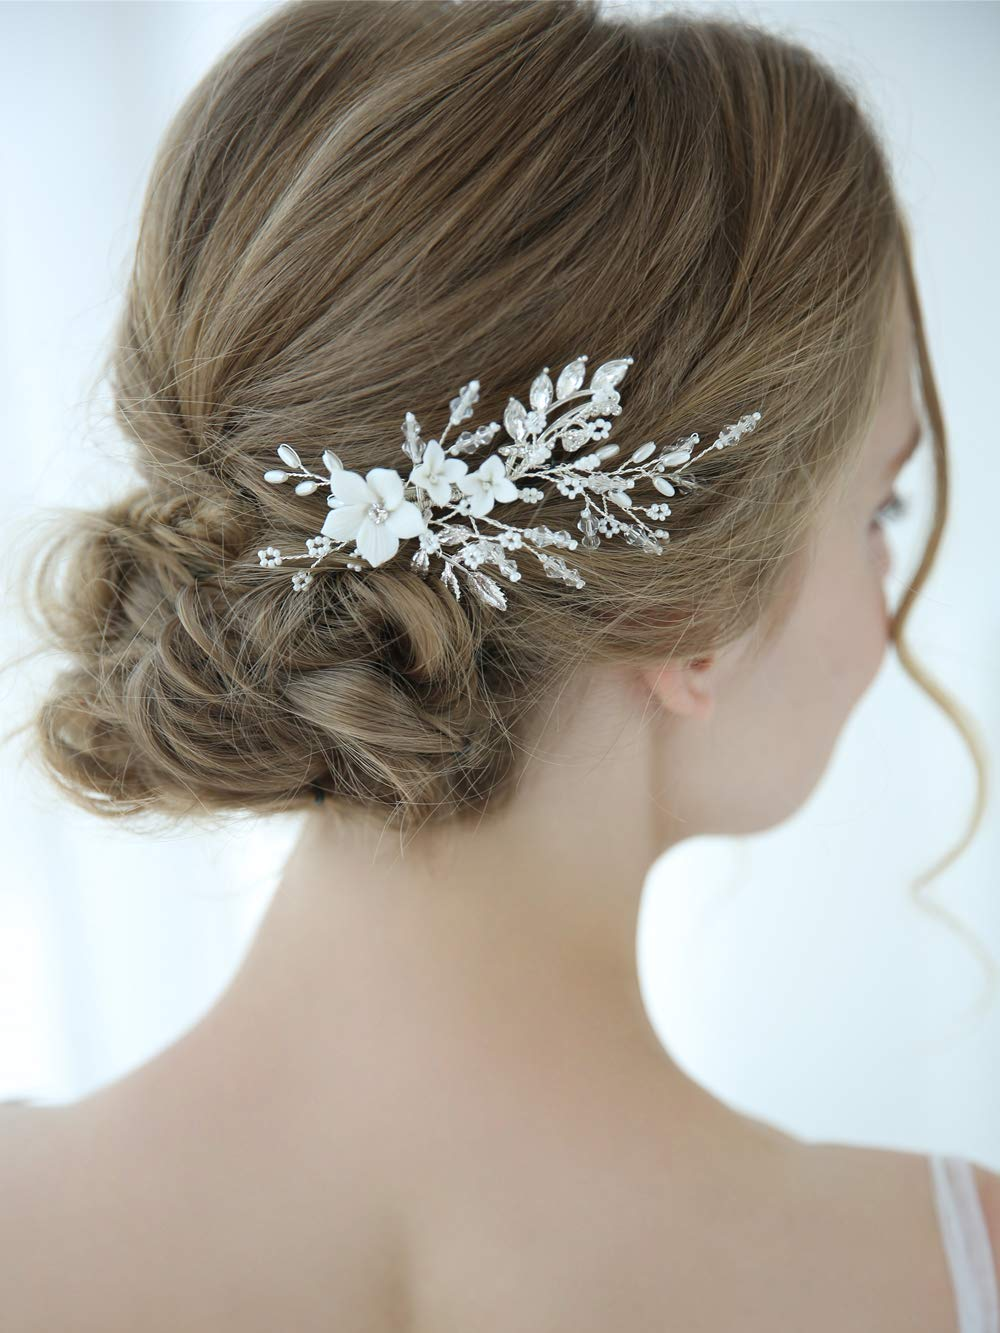 Aegenacess Wedding Hair Comb Silver Clips for Brides and Bridesmaids - White Flowers Side with Rhinestones Crystal Leaf Decorative Vintage Bridal Accessories Headpieces for Women and Girls by Aegenacess